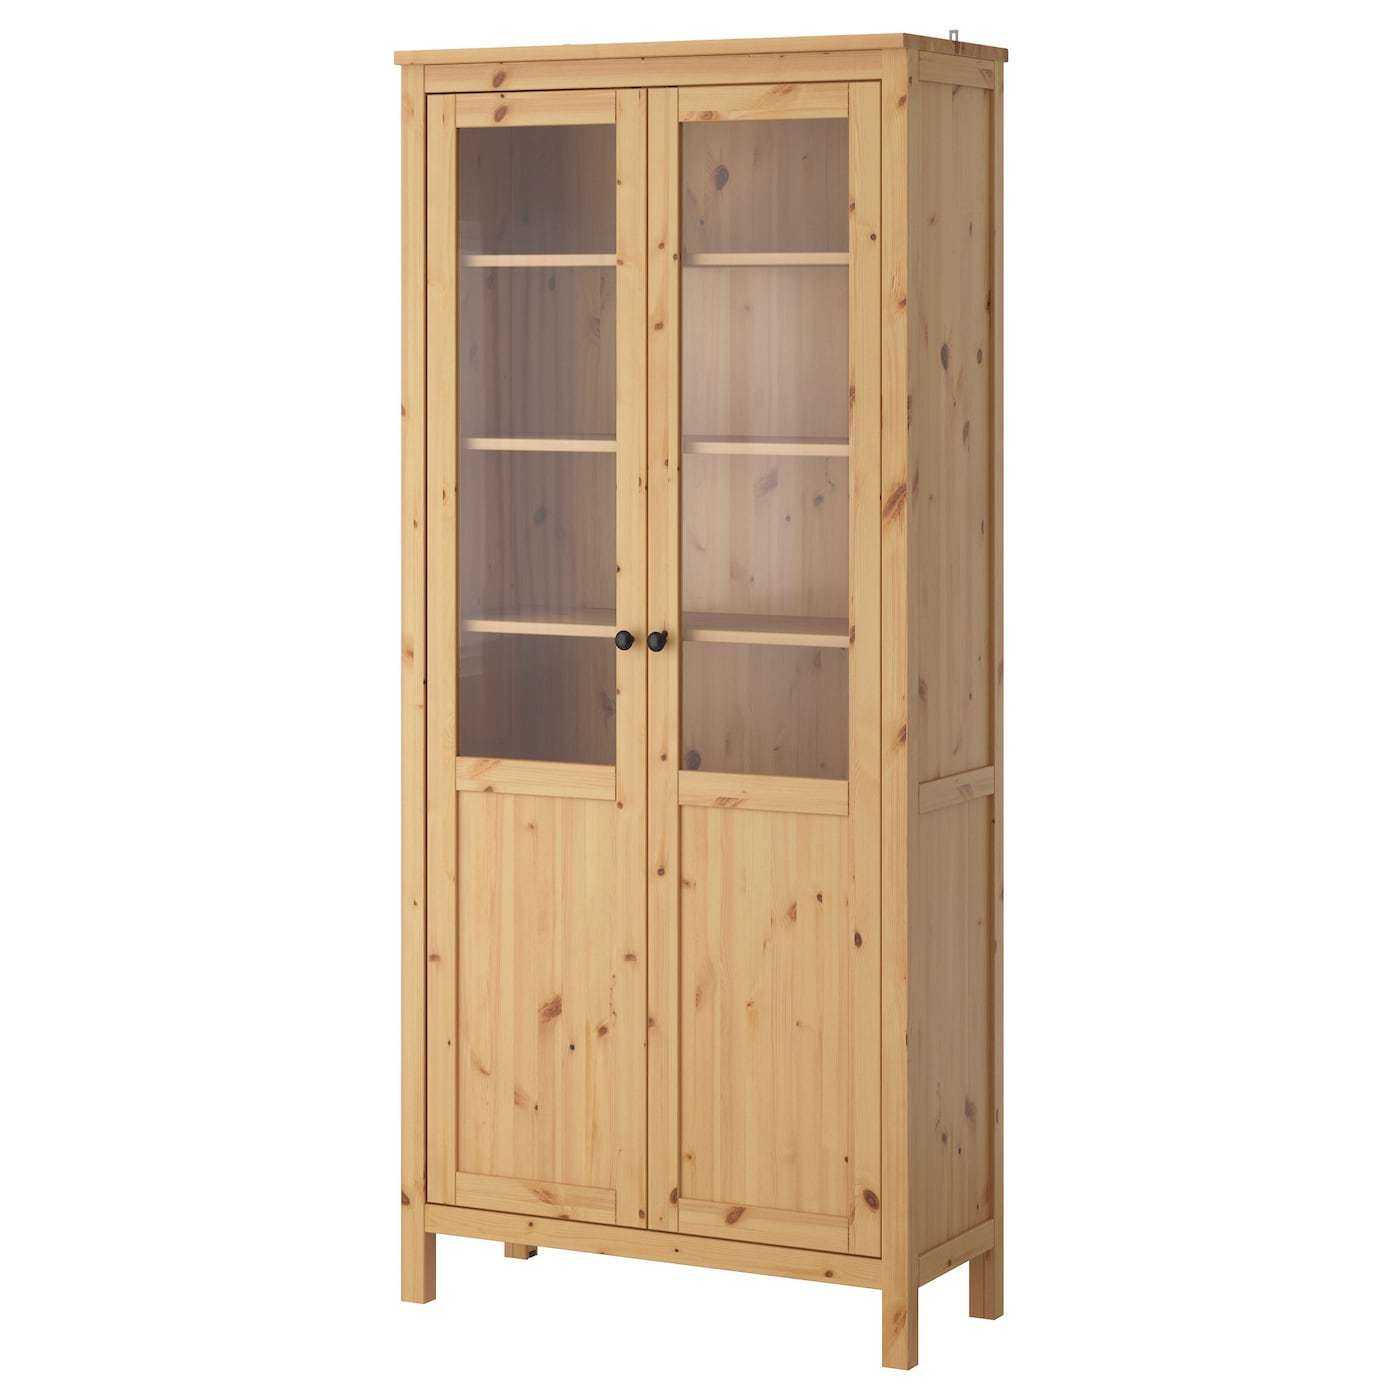 IKEA HEMNES cabinet with panel/glass-door Solid wood has a natural feel.